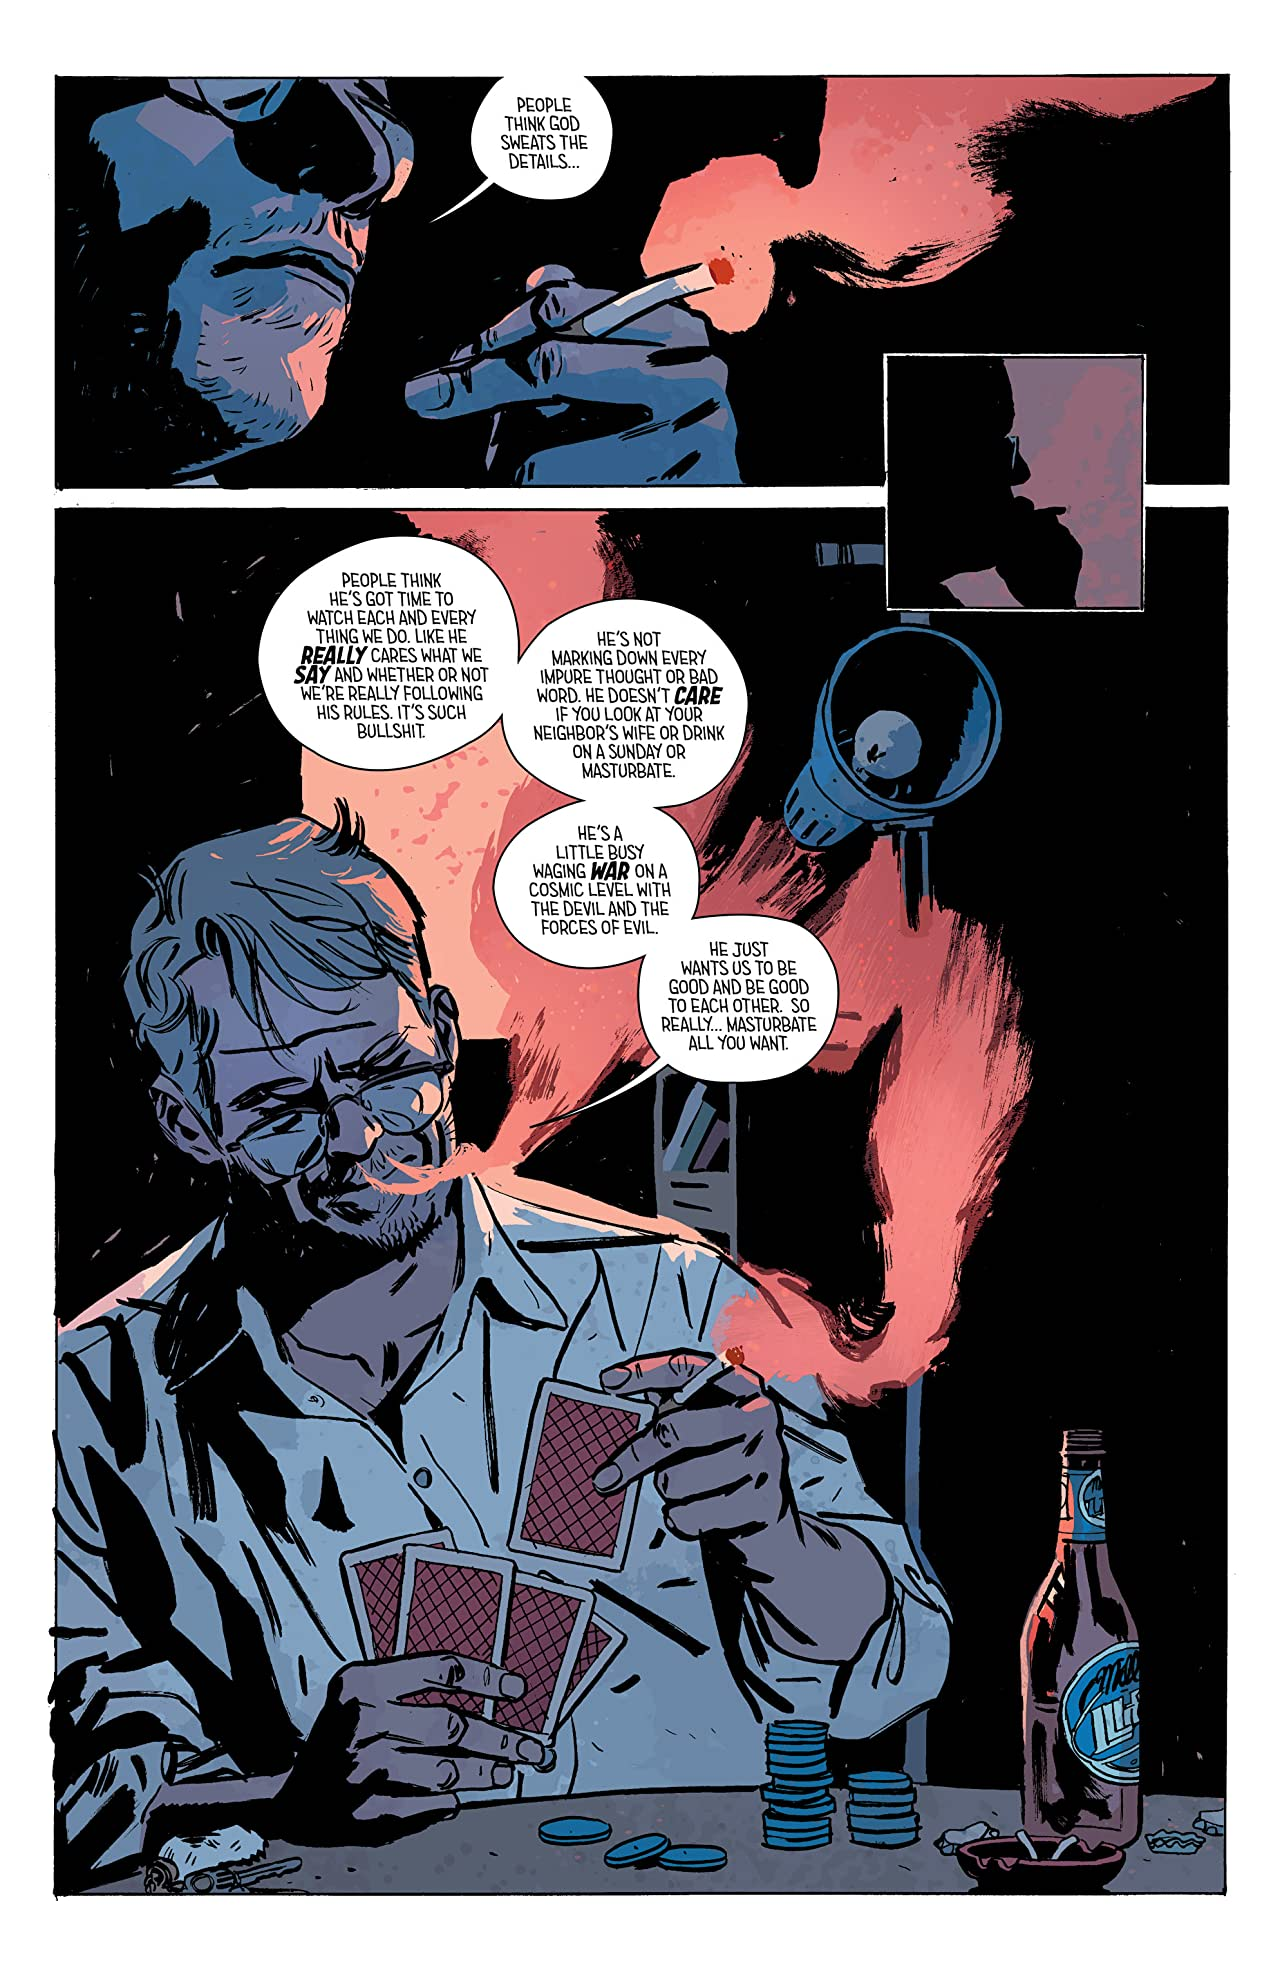 Outcast by Kirkman & Azaceta #3